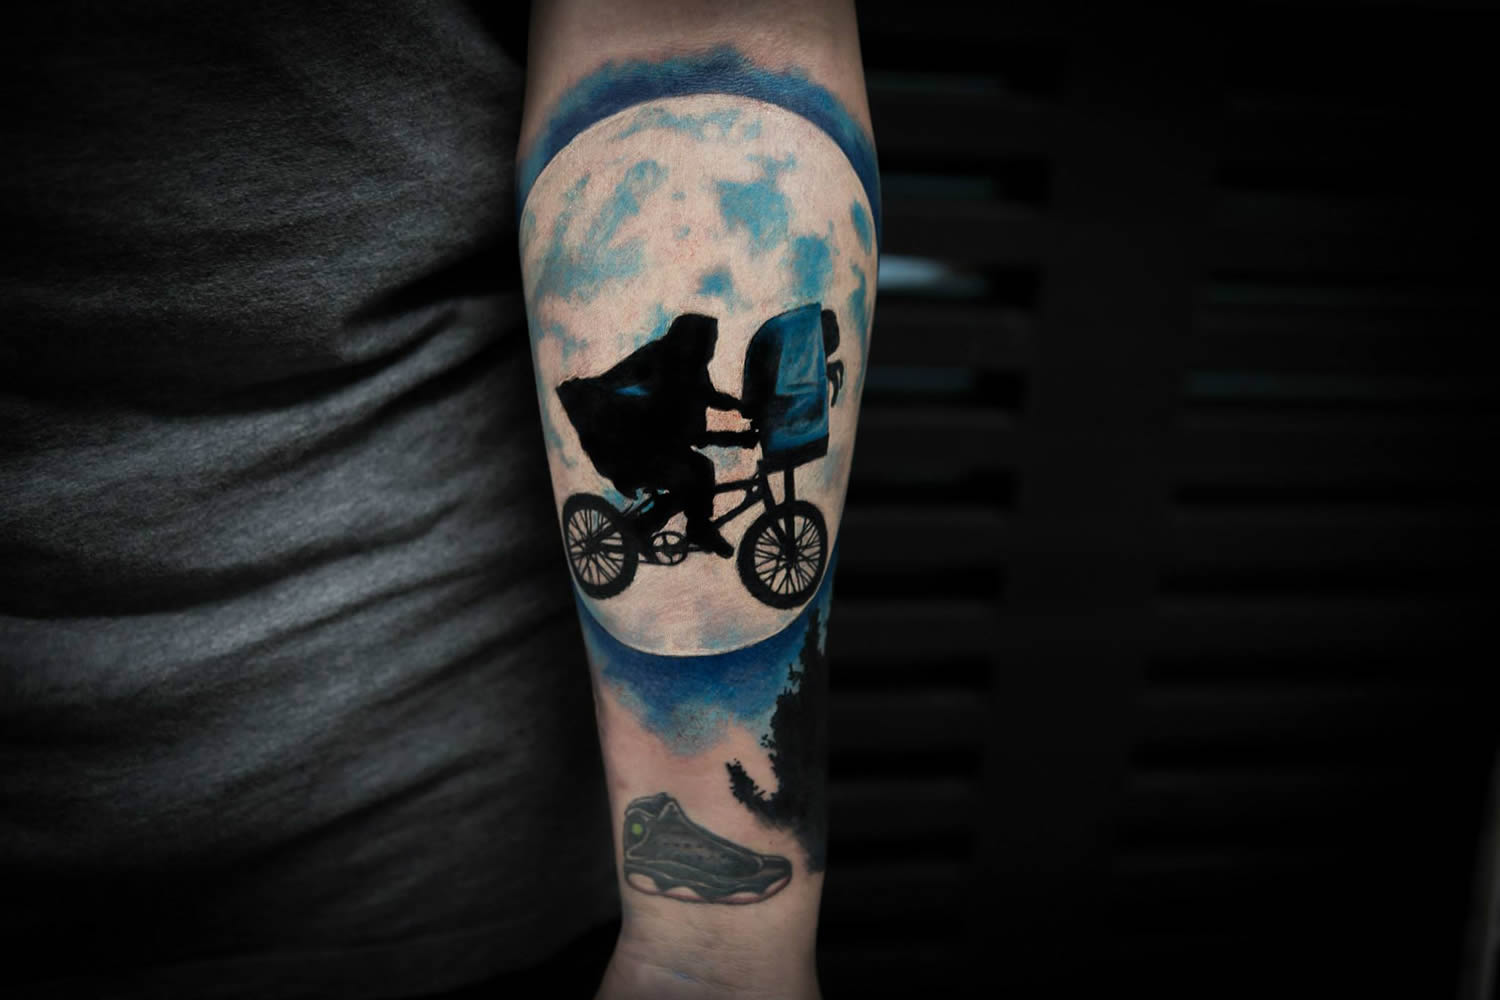 ET tattoo by bang bang